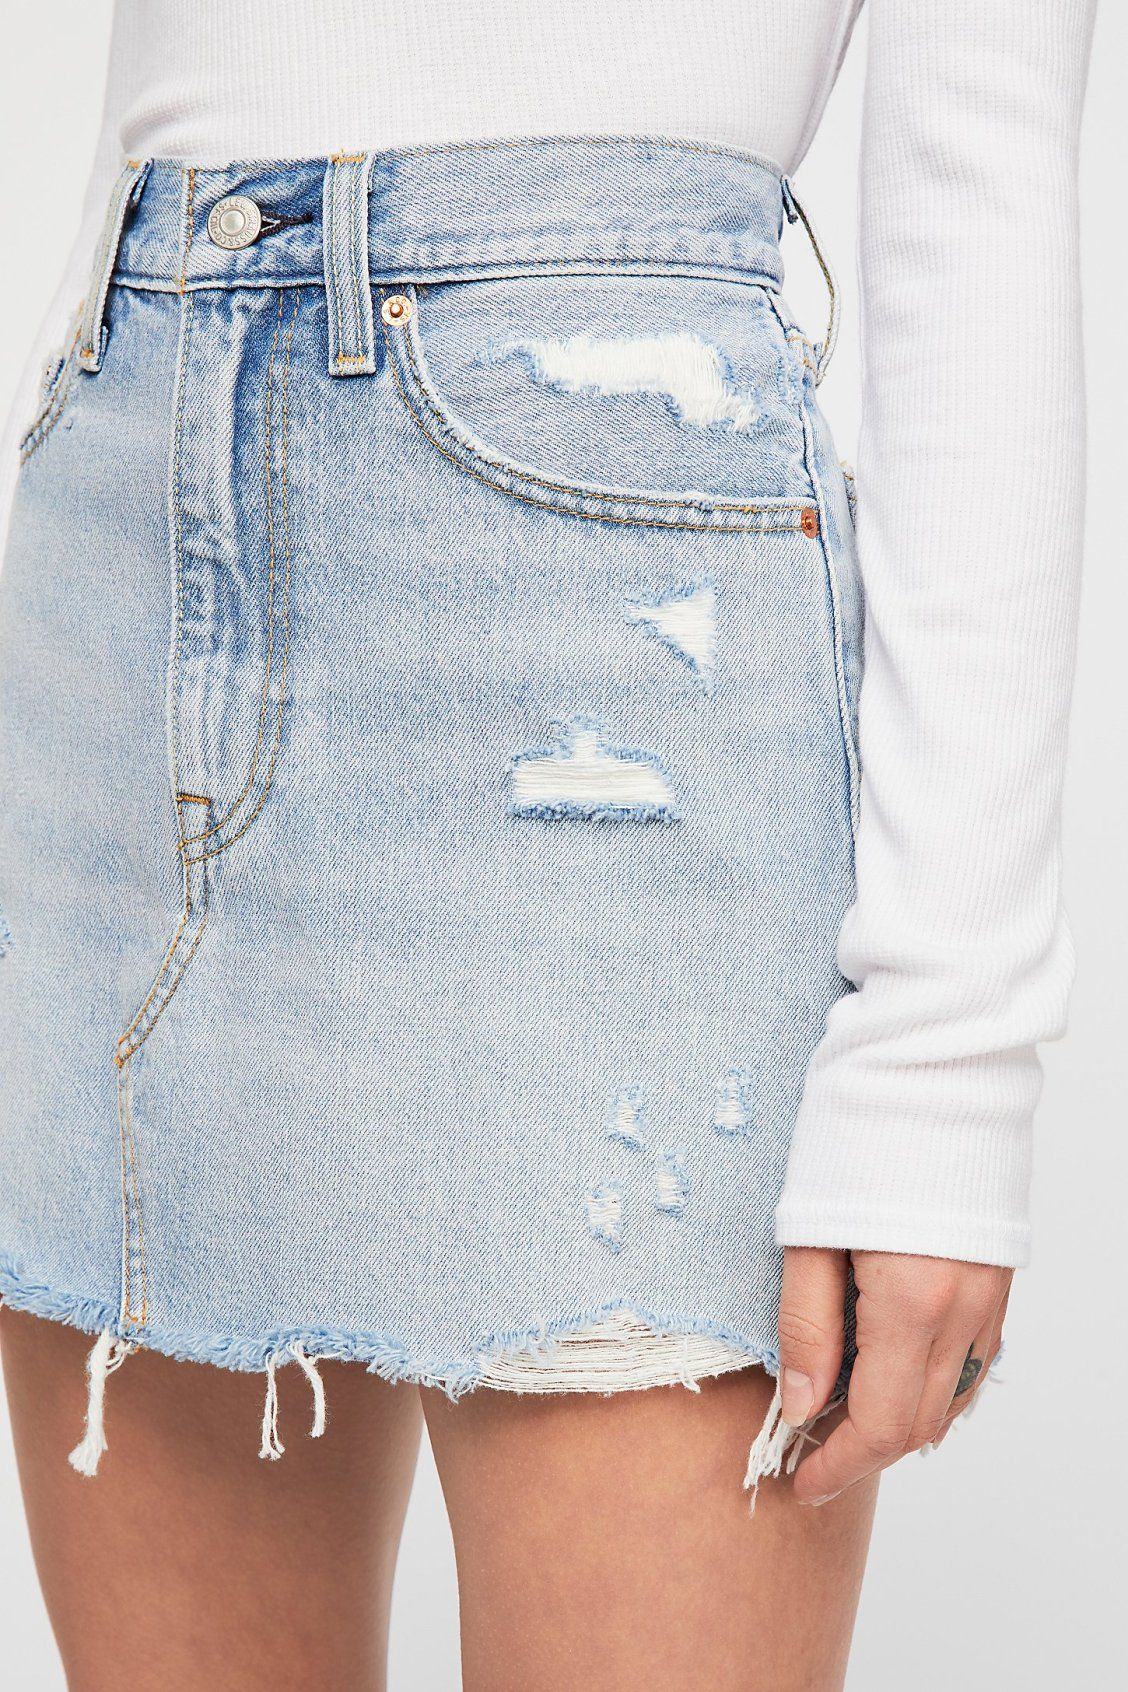 cae505733d Levi's Deconstructed Denim Skirt in 2019 | Denim | Denim skirt ...